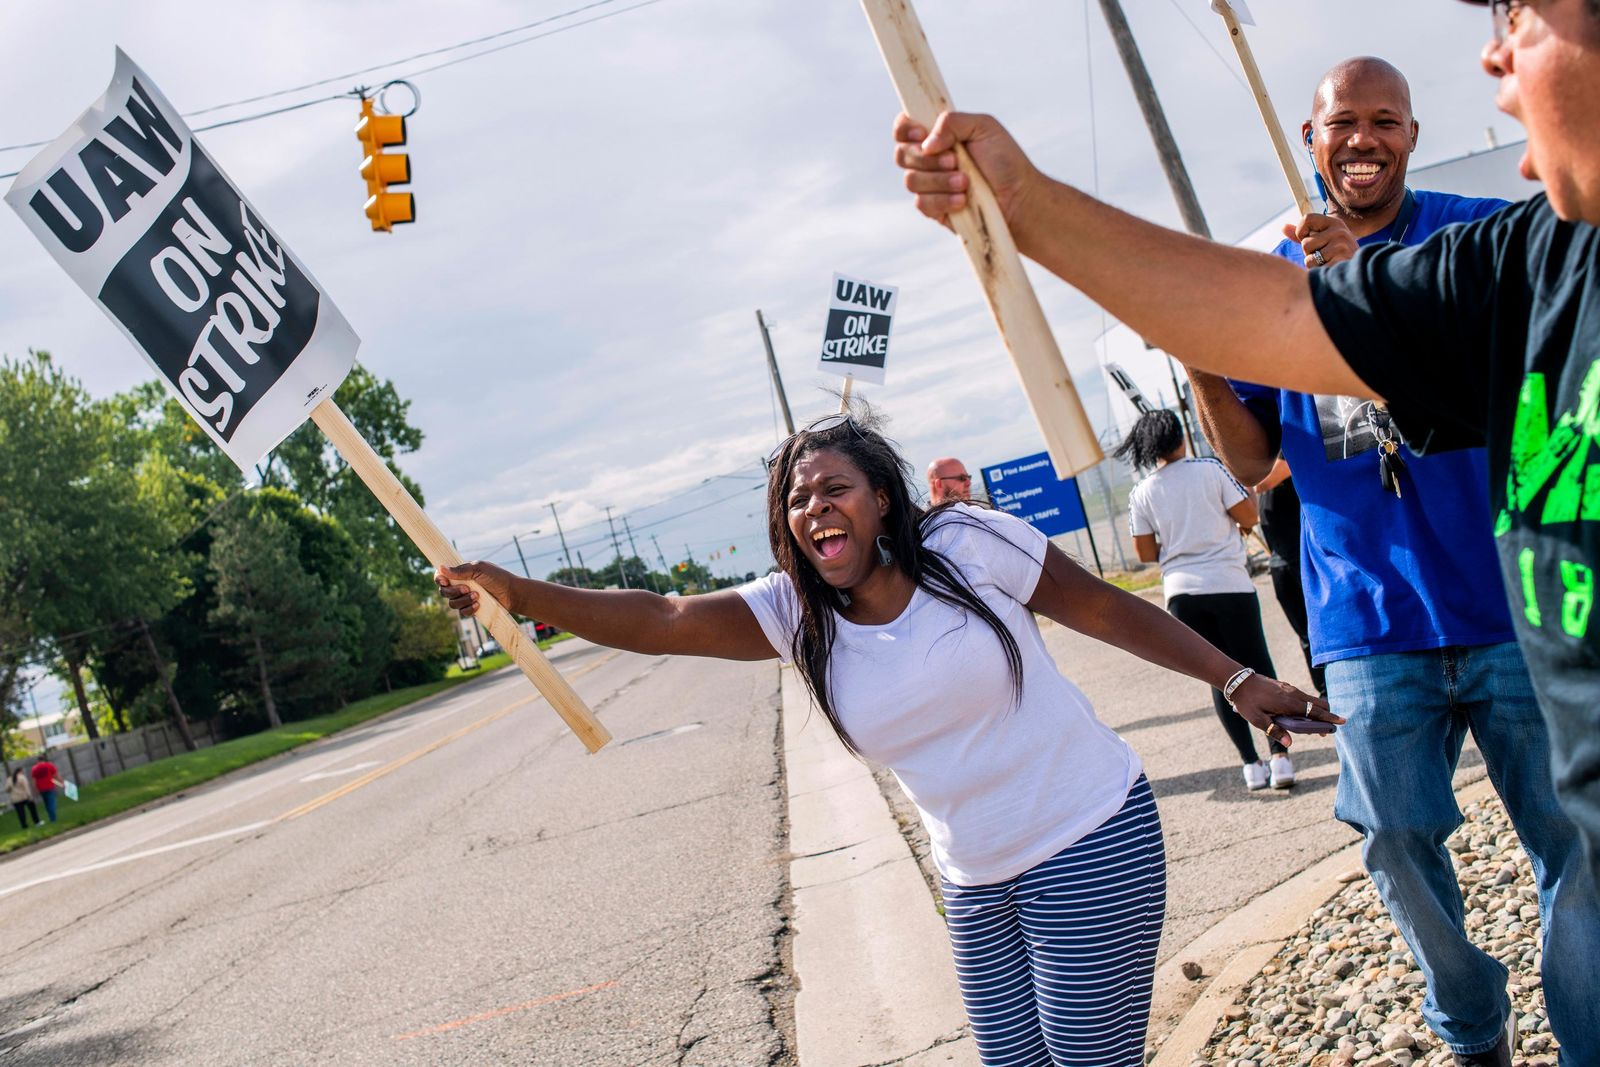 Flint resident Dorrit Madison, who has worked at the plant for more than 11 years, shouts out at cars passing by as General Motors employees demonstrate outside of the Flint Assembly Plant on Sunday, Sept. 15, 2019 in Flint. GM autoworkers in Lansing officially go on strike at midnight Sunday after UAW leadership voted to do so Sunday morning.{ } (Jake May/The Flint Journal via AP)